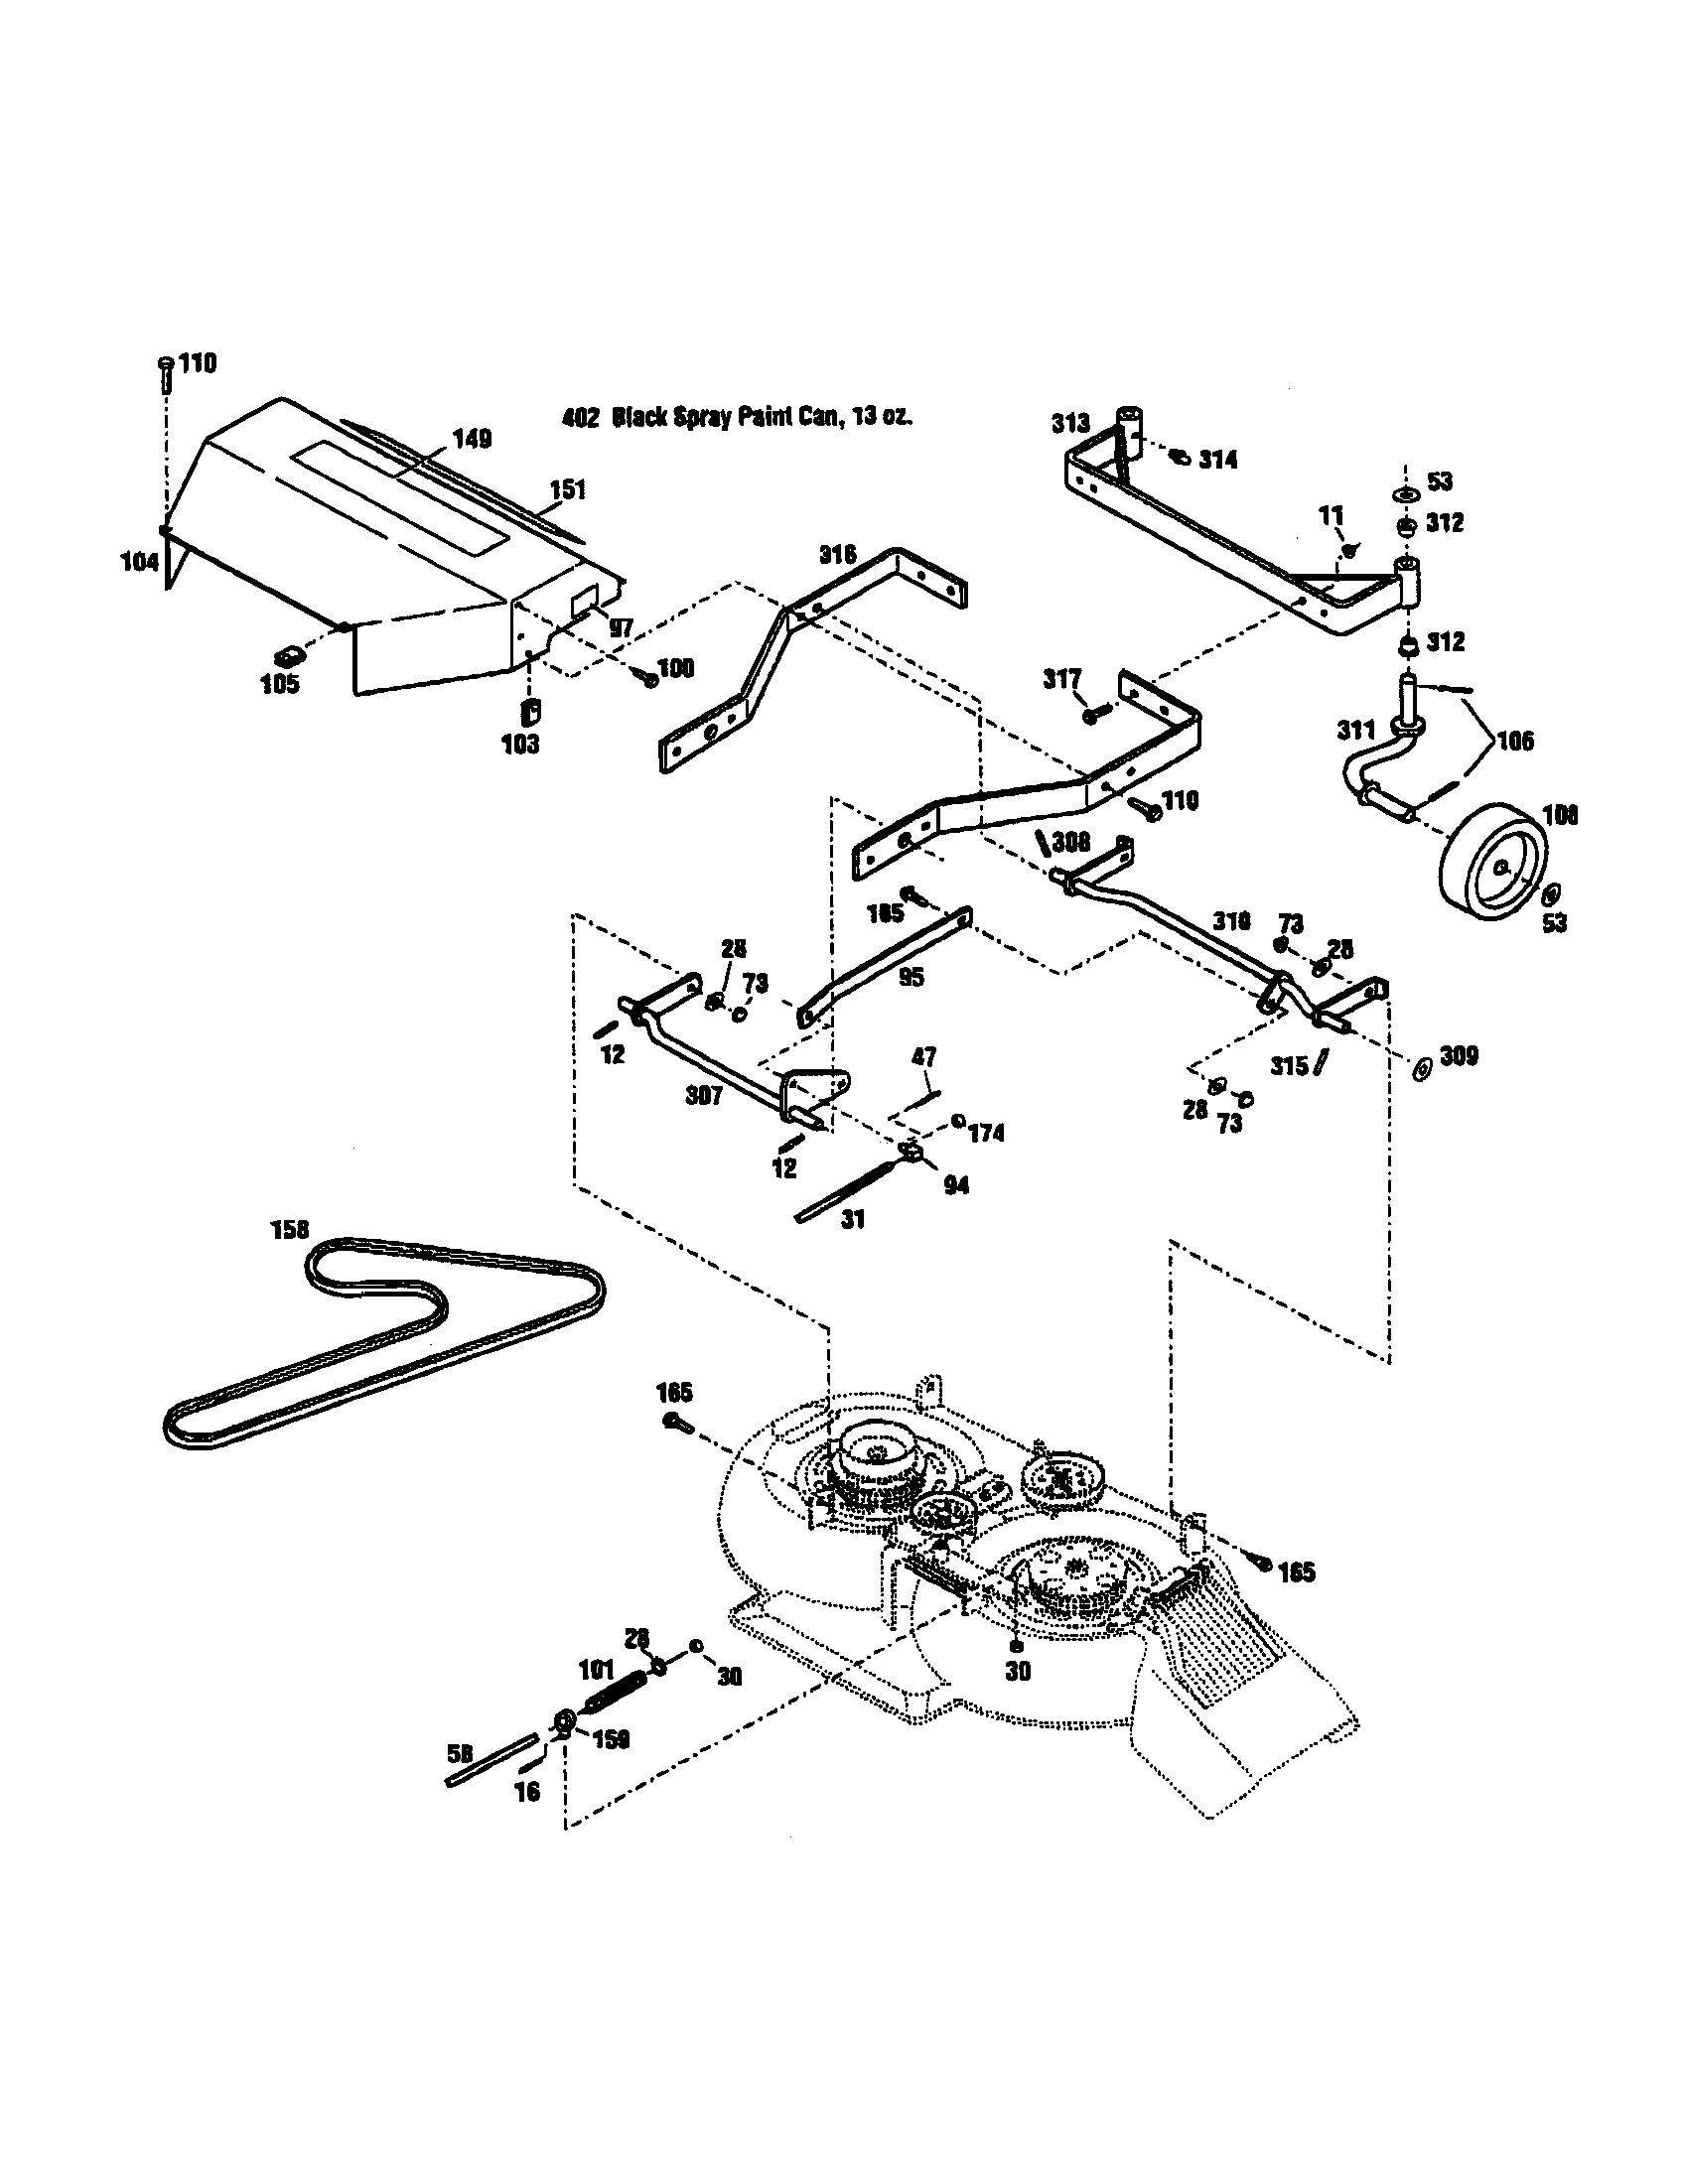 Fine wiring diagram 1986 honda big red inspiration electrical